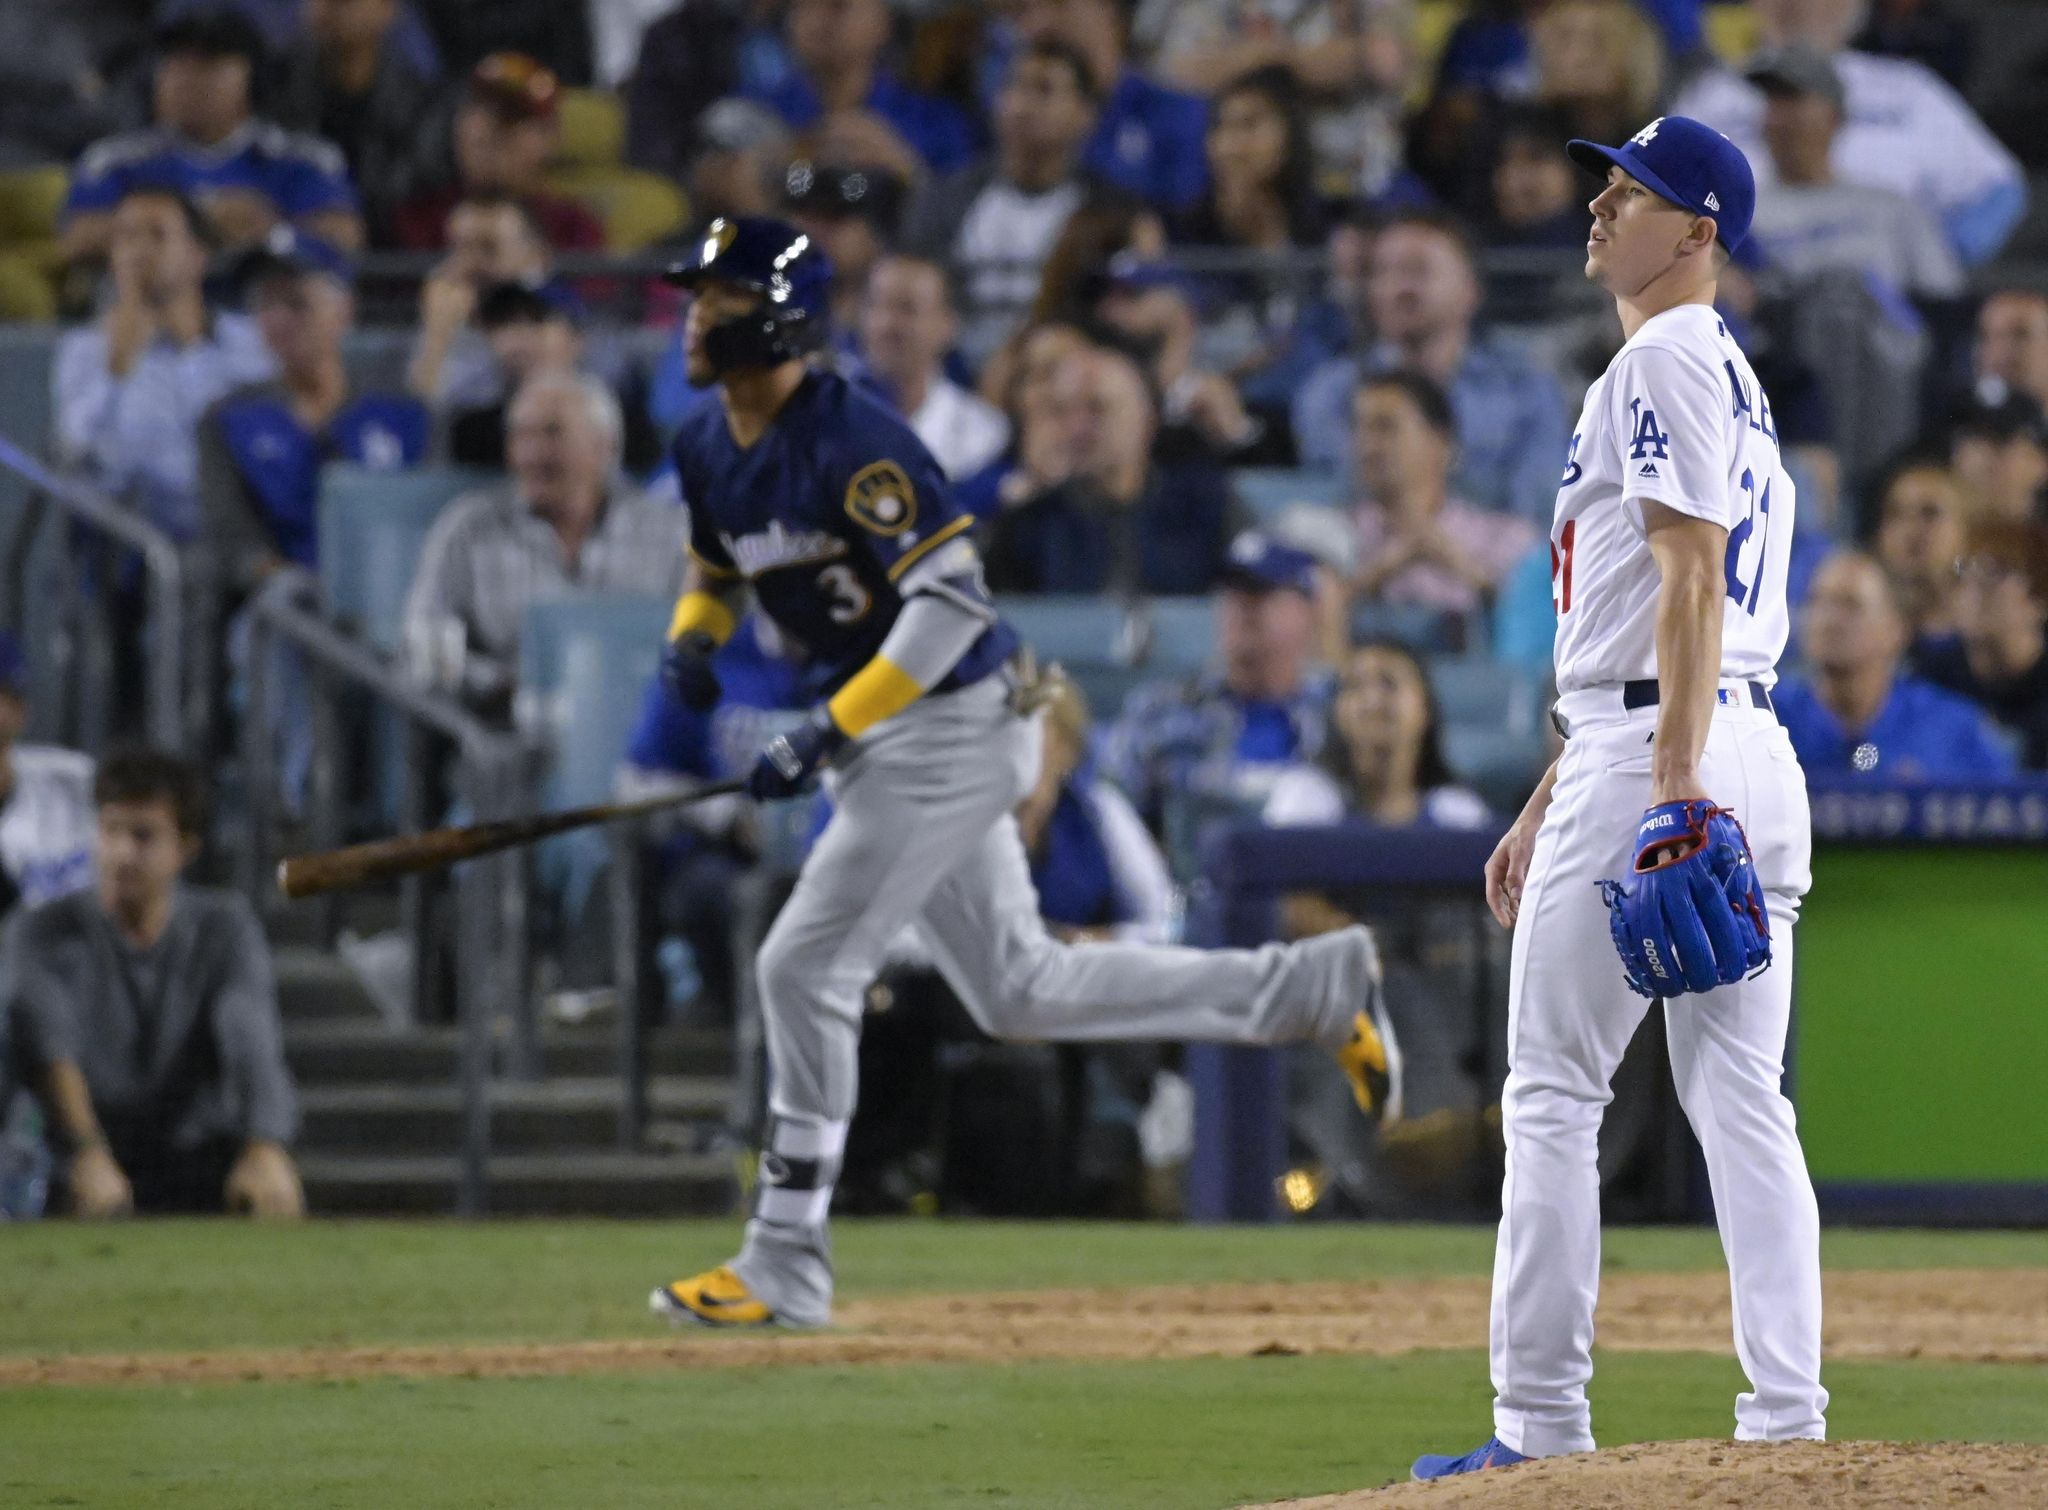 Nlcs_brewers_dodgers_baseball_72241_s2048x1510